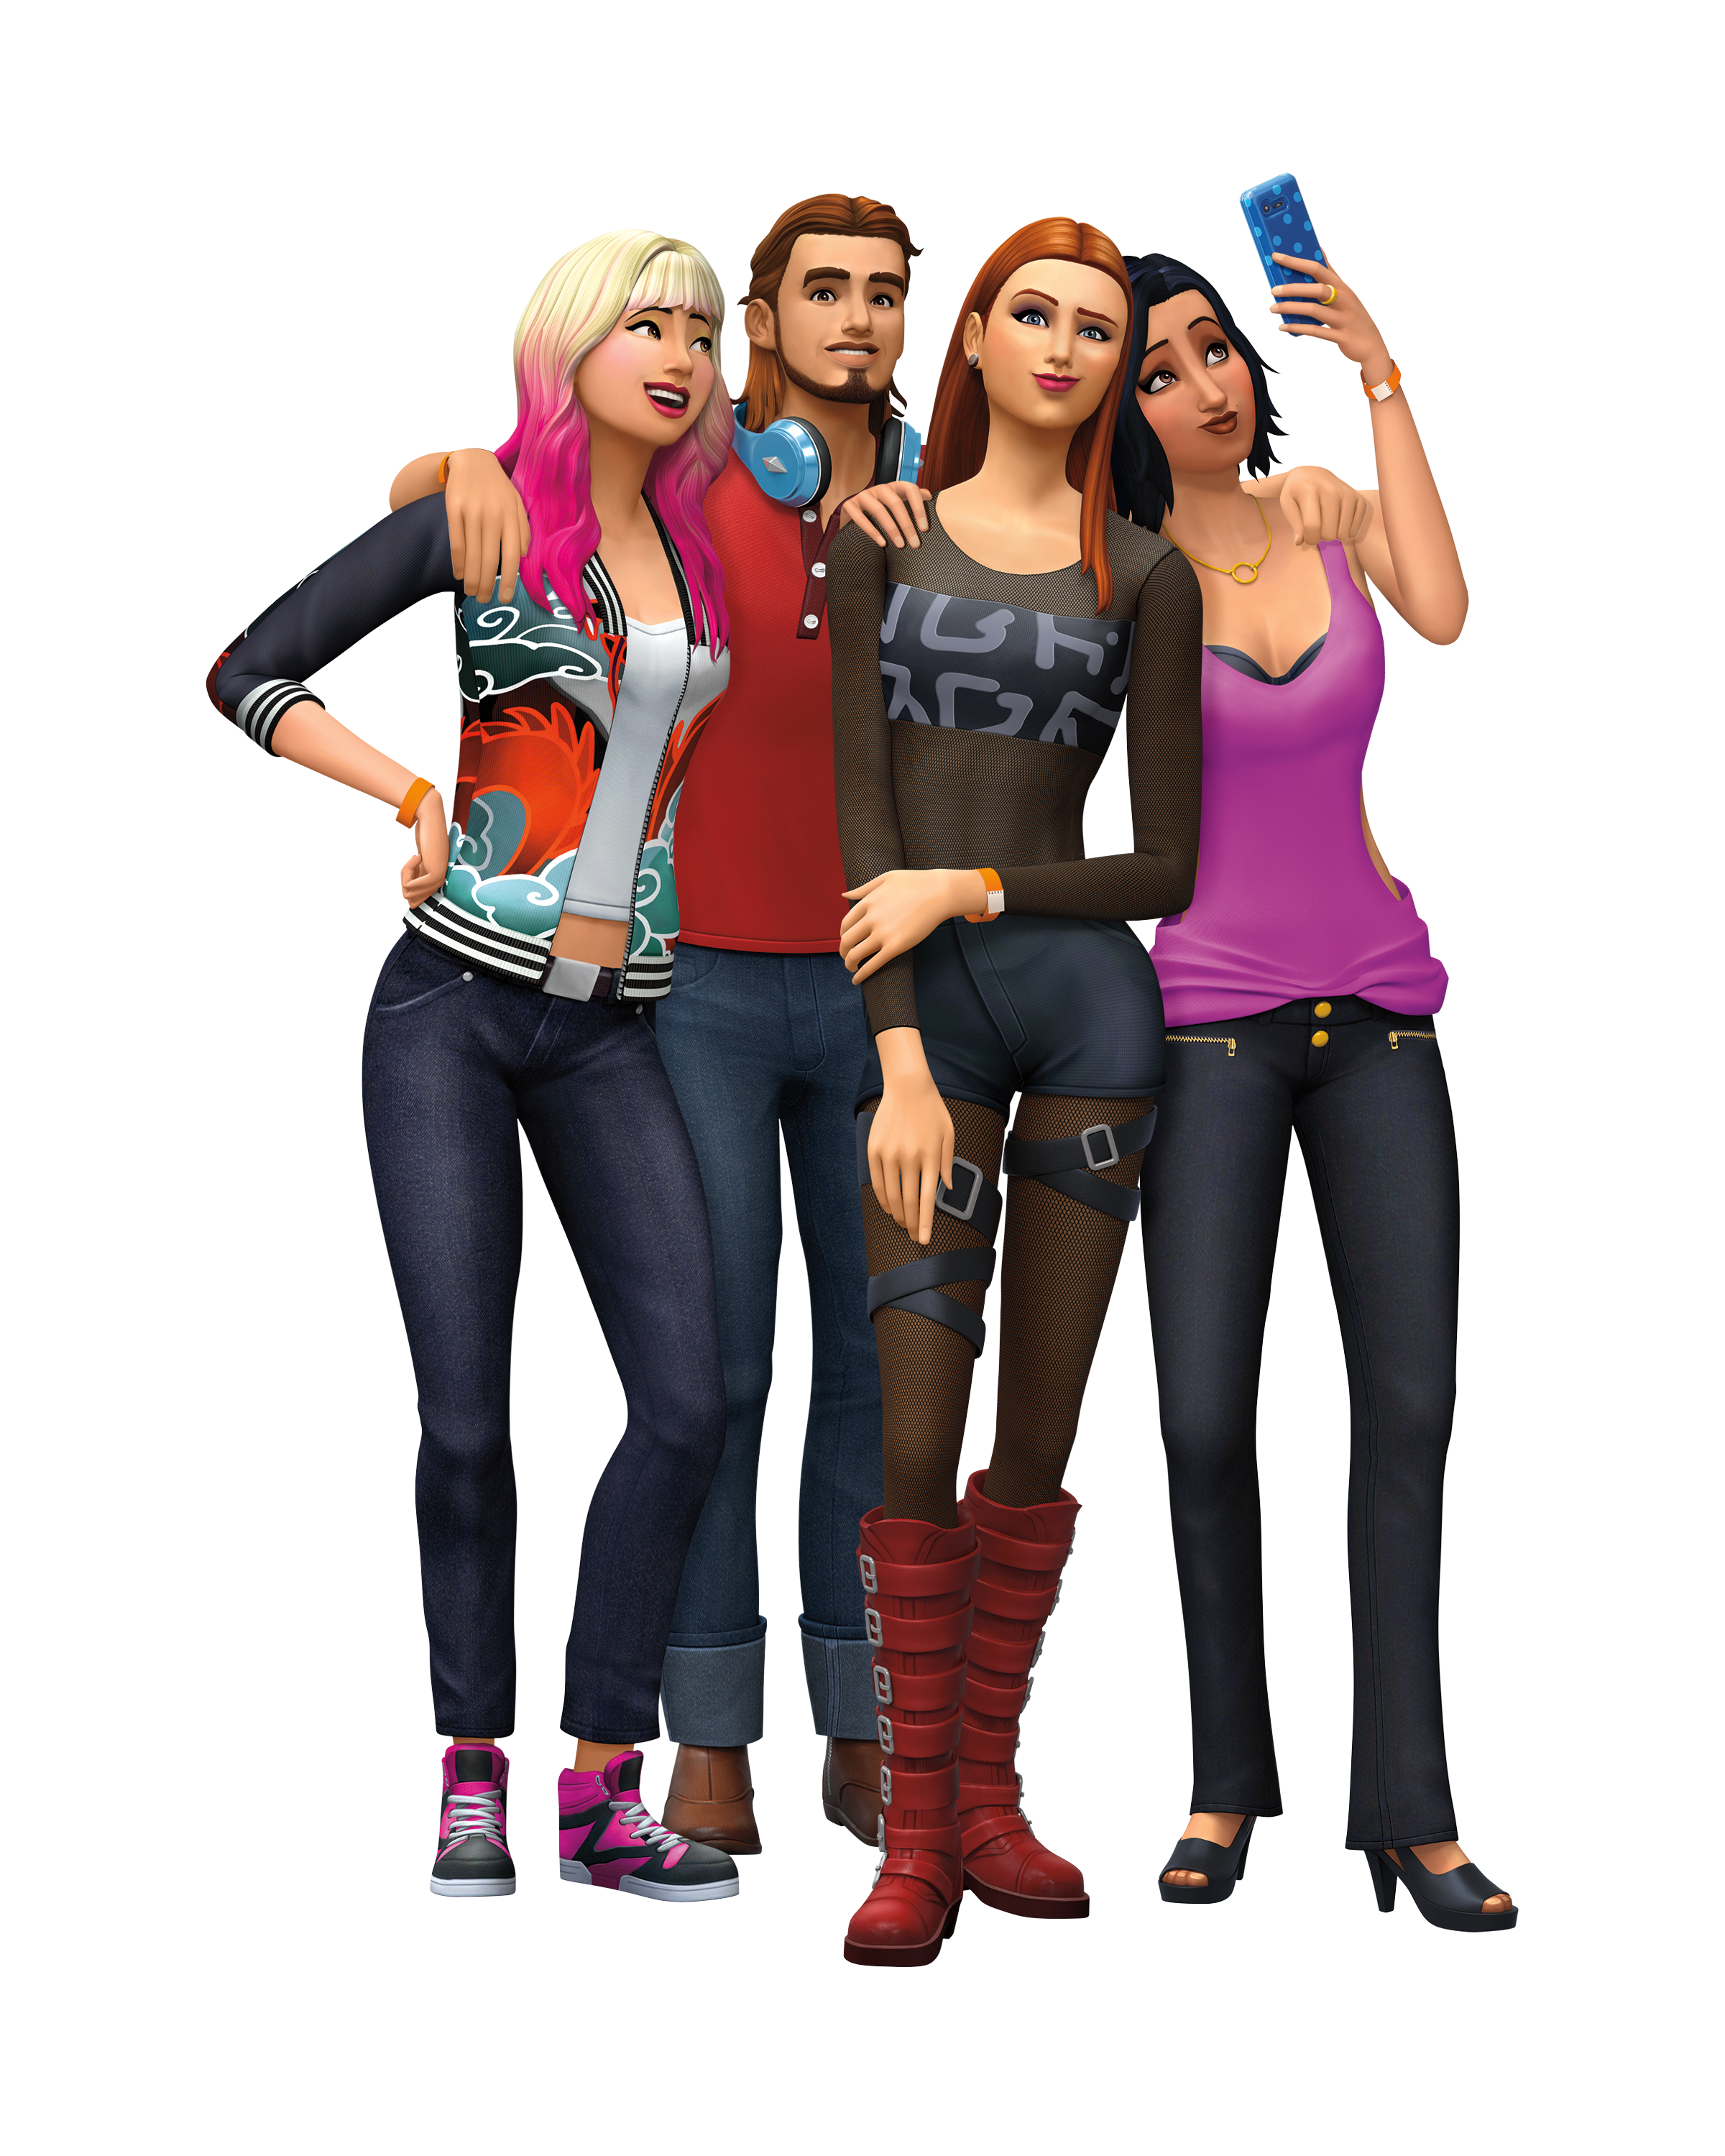 The sims 4 png. Future of interview it